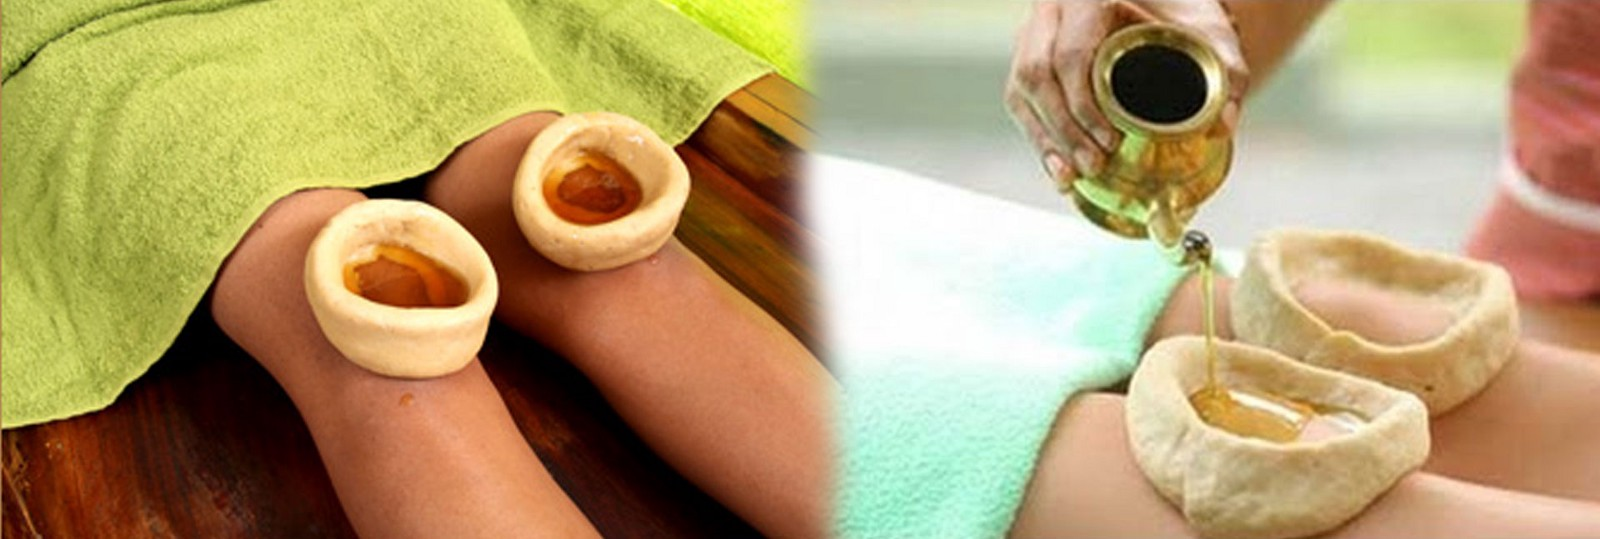 ayurvedic knee pain treatment